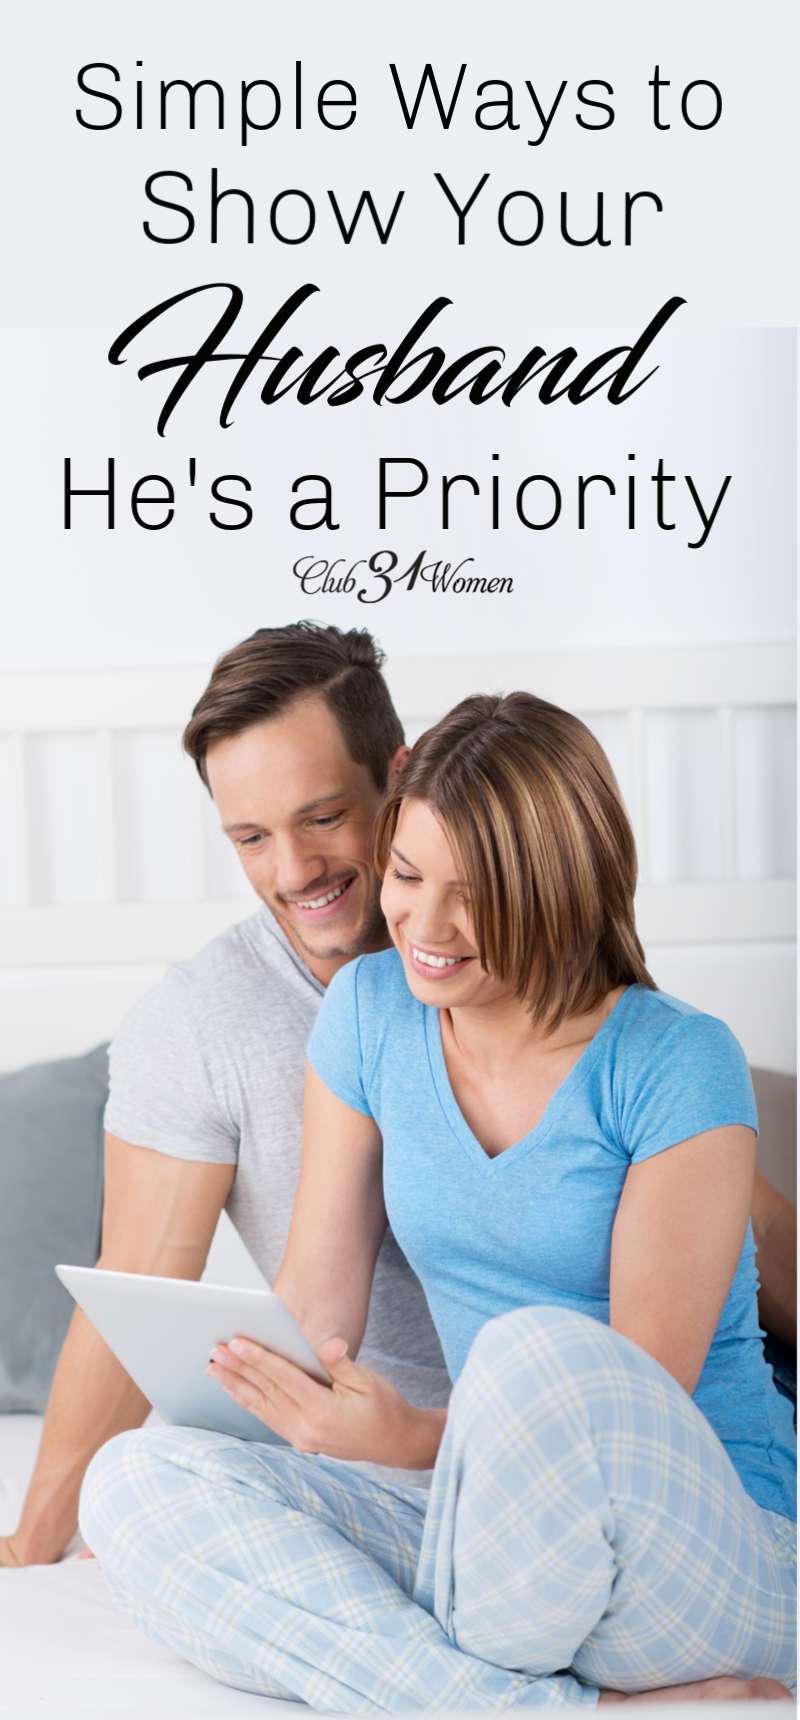 In what ways can we show our husbands we see their needs as a priority, too? Here are some ideas that may help give you some direction.